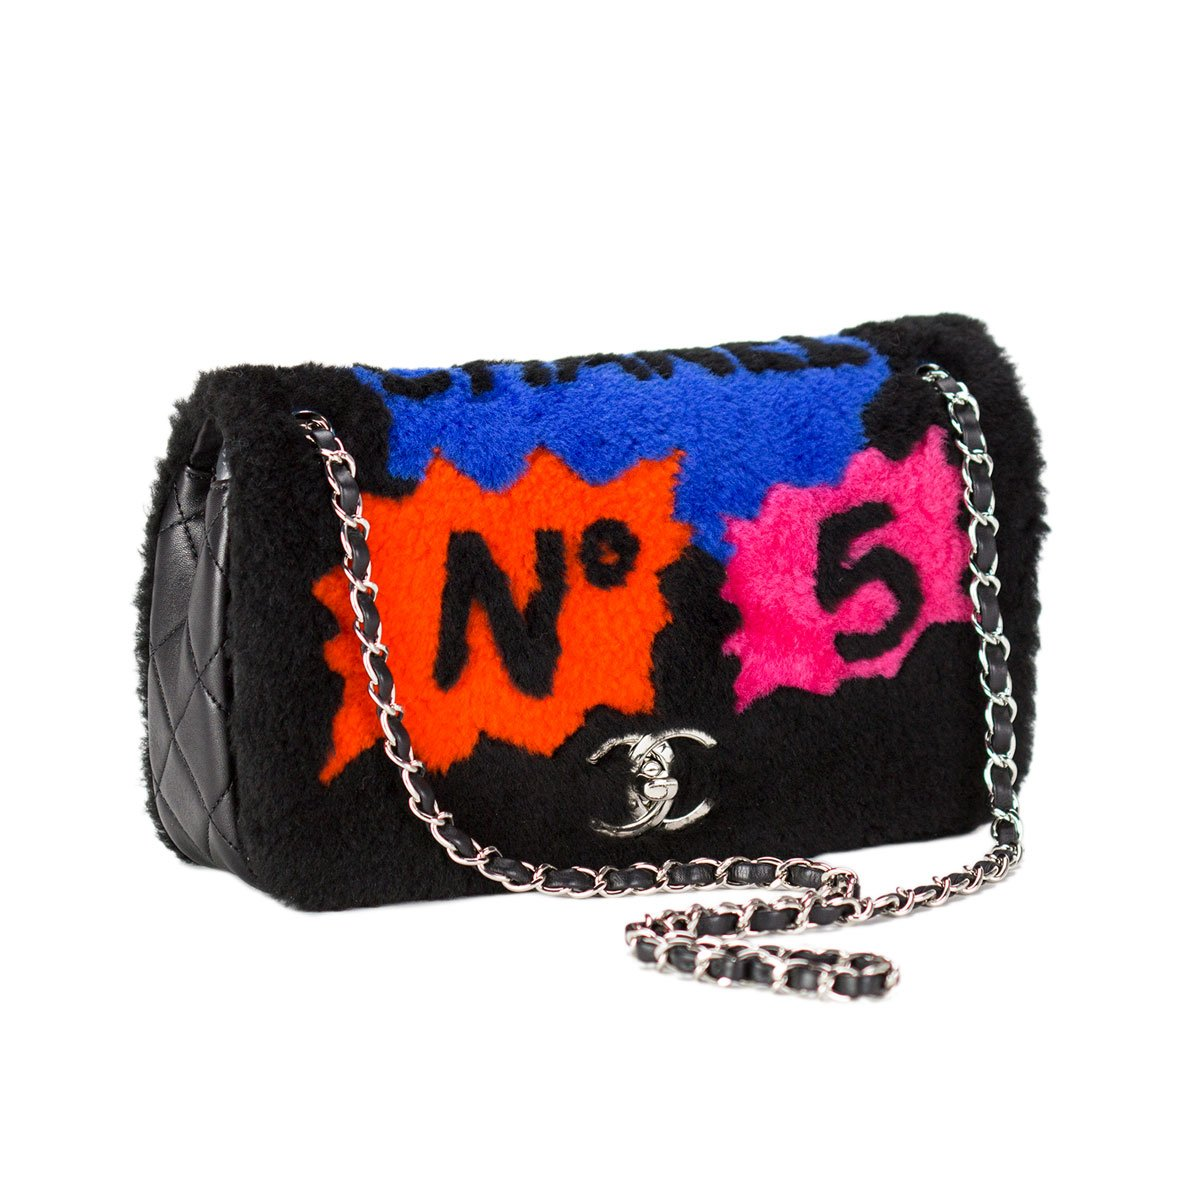 Chanel Pop Art Shearling Lamb Flap